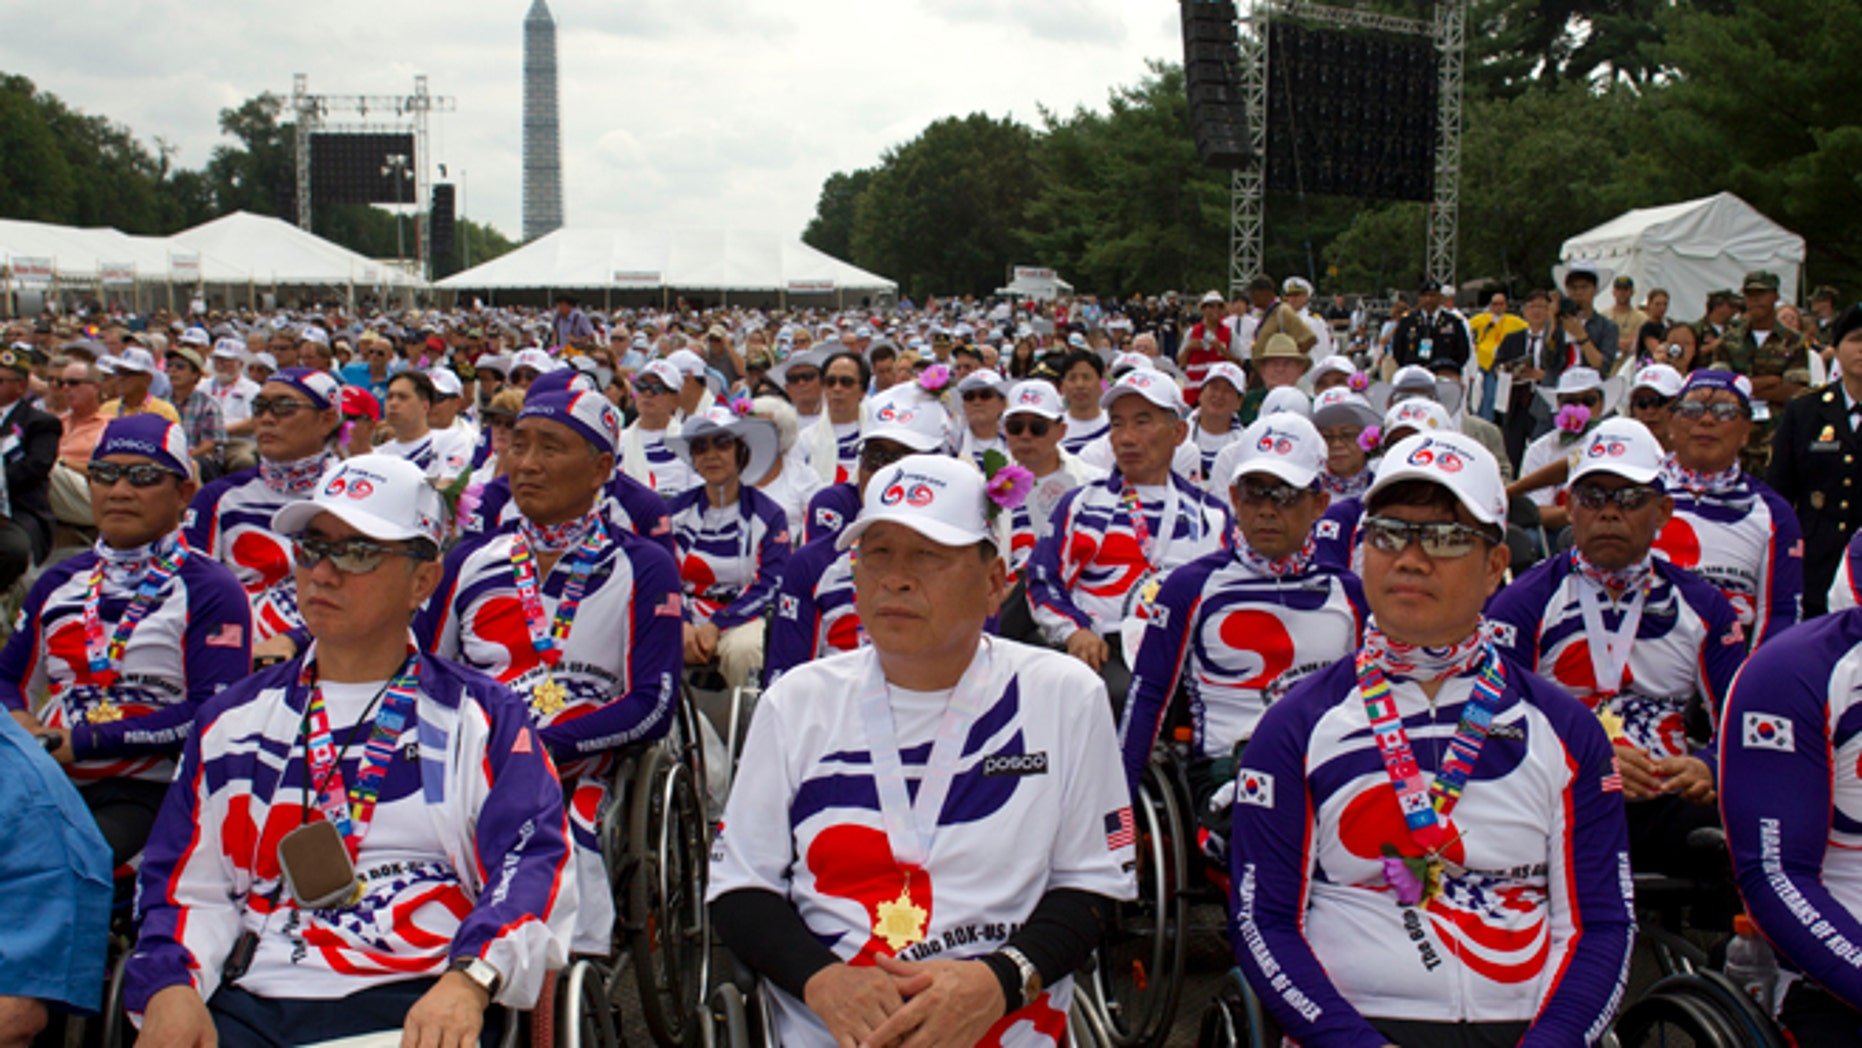 Saturday, July 27, 2013: Paralyzed Veterans of Korea watch as President Obama speaks at a ceremony marking the 60th anniversary of the end of the Korean War, near the Korean War Veterans Memorial  in Washington, D.C.